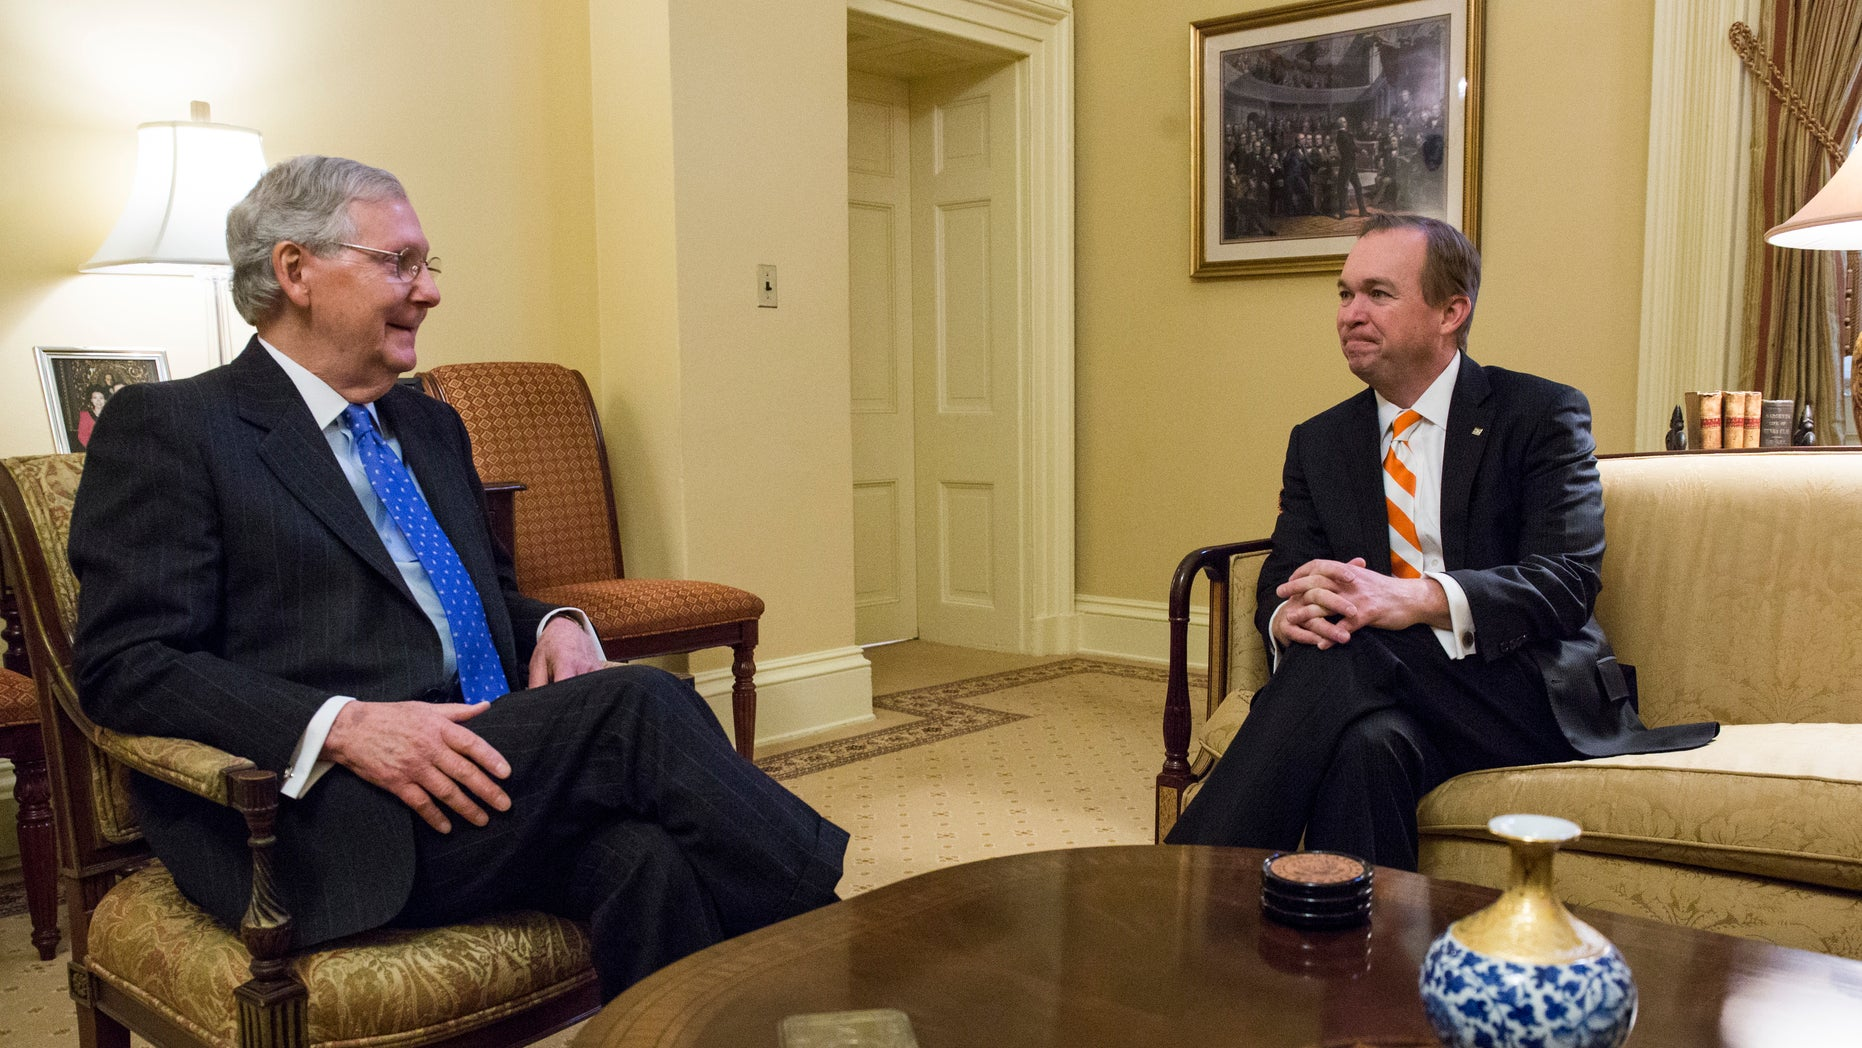 Jan. 5, 2017: Senate Majority Leader Mitch McConnell of Ky., left, meets with Budget Director-designate Rep. Mick Mulvaney, R-S.C. on Capitol Hill in Washington.